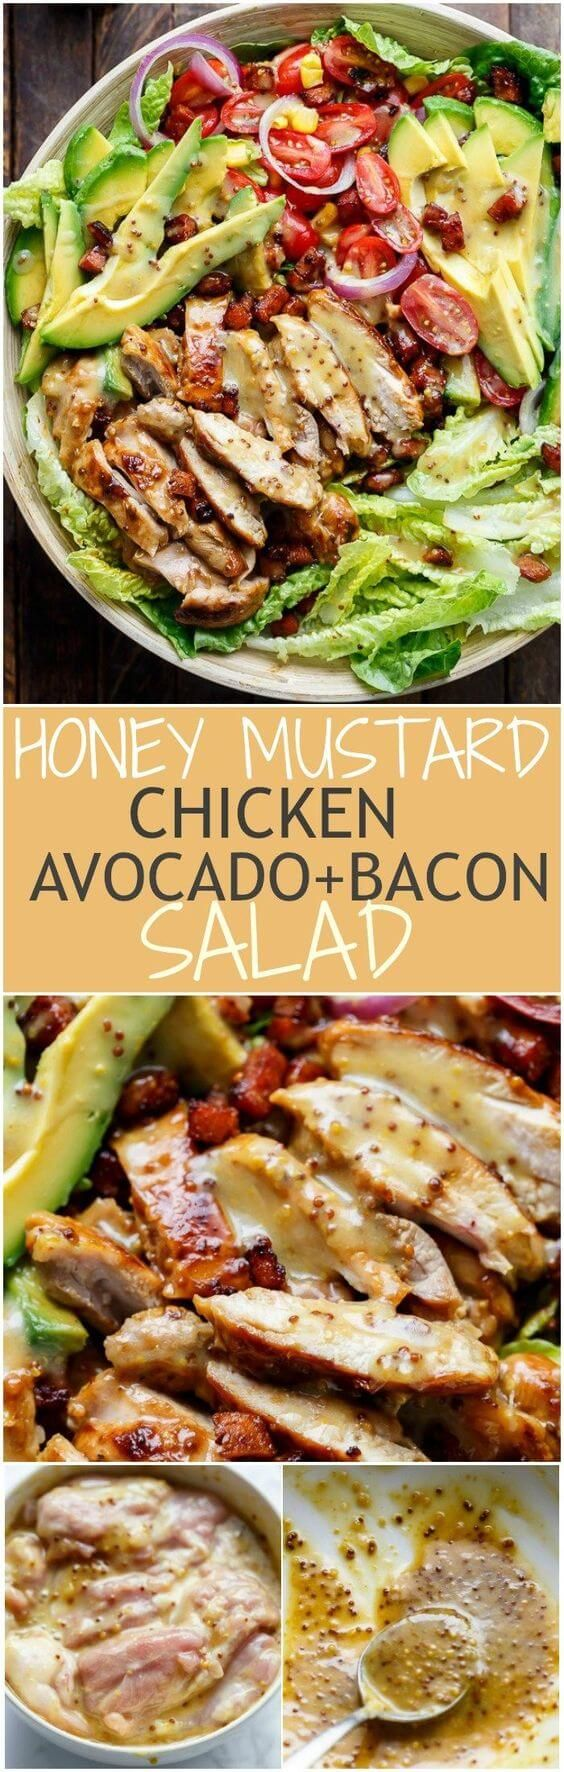 Clean eating easy recipes